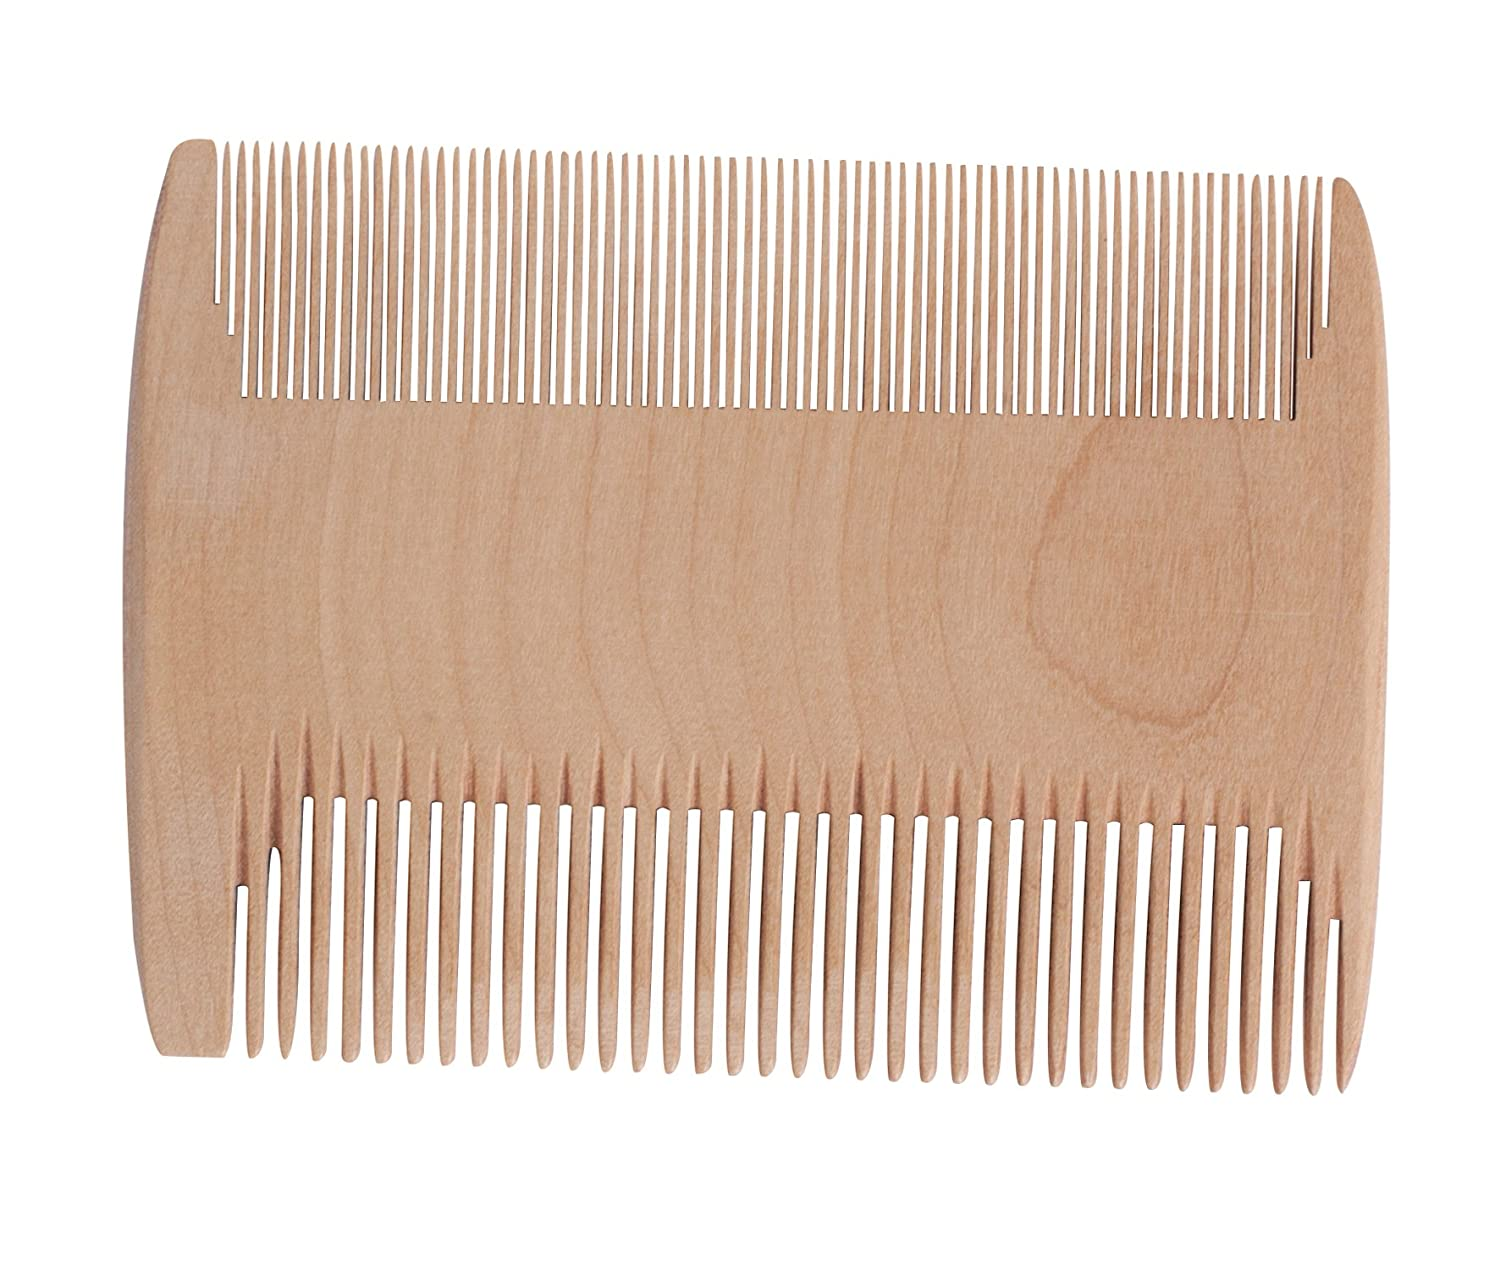 Redecker Service Tree Baby/Nit Comb, 3-1/4 x 2-1/4-Inches